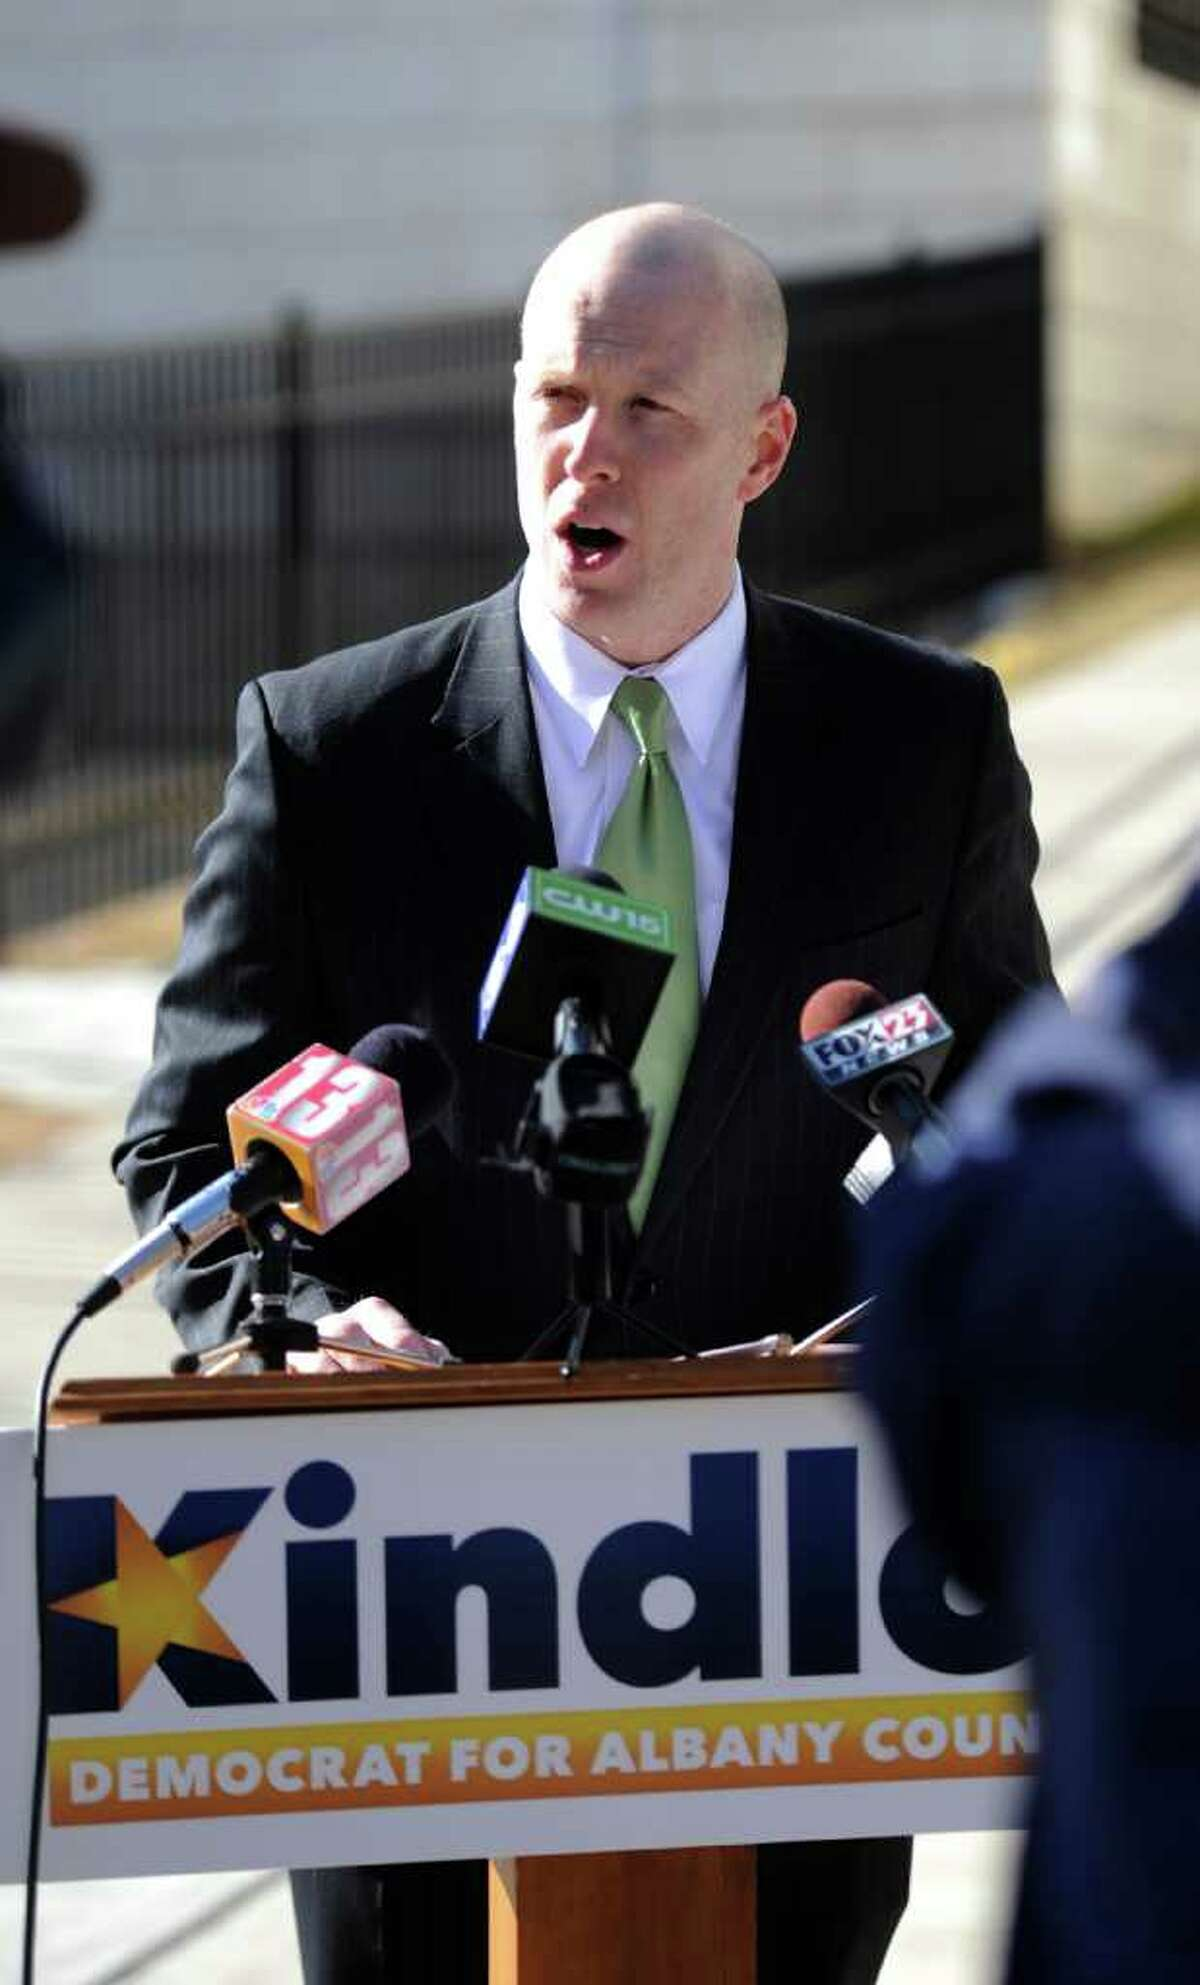 Lee Kindlon candidate for Albany County DA speaks at a press conference in Albany, N.Y. Feb. 20, 2012, regarding allegations of wrongdoing by DA David Soares in relation to an investigation of NXIVM. (Skip Dickstein / Times Union)